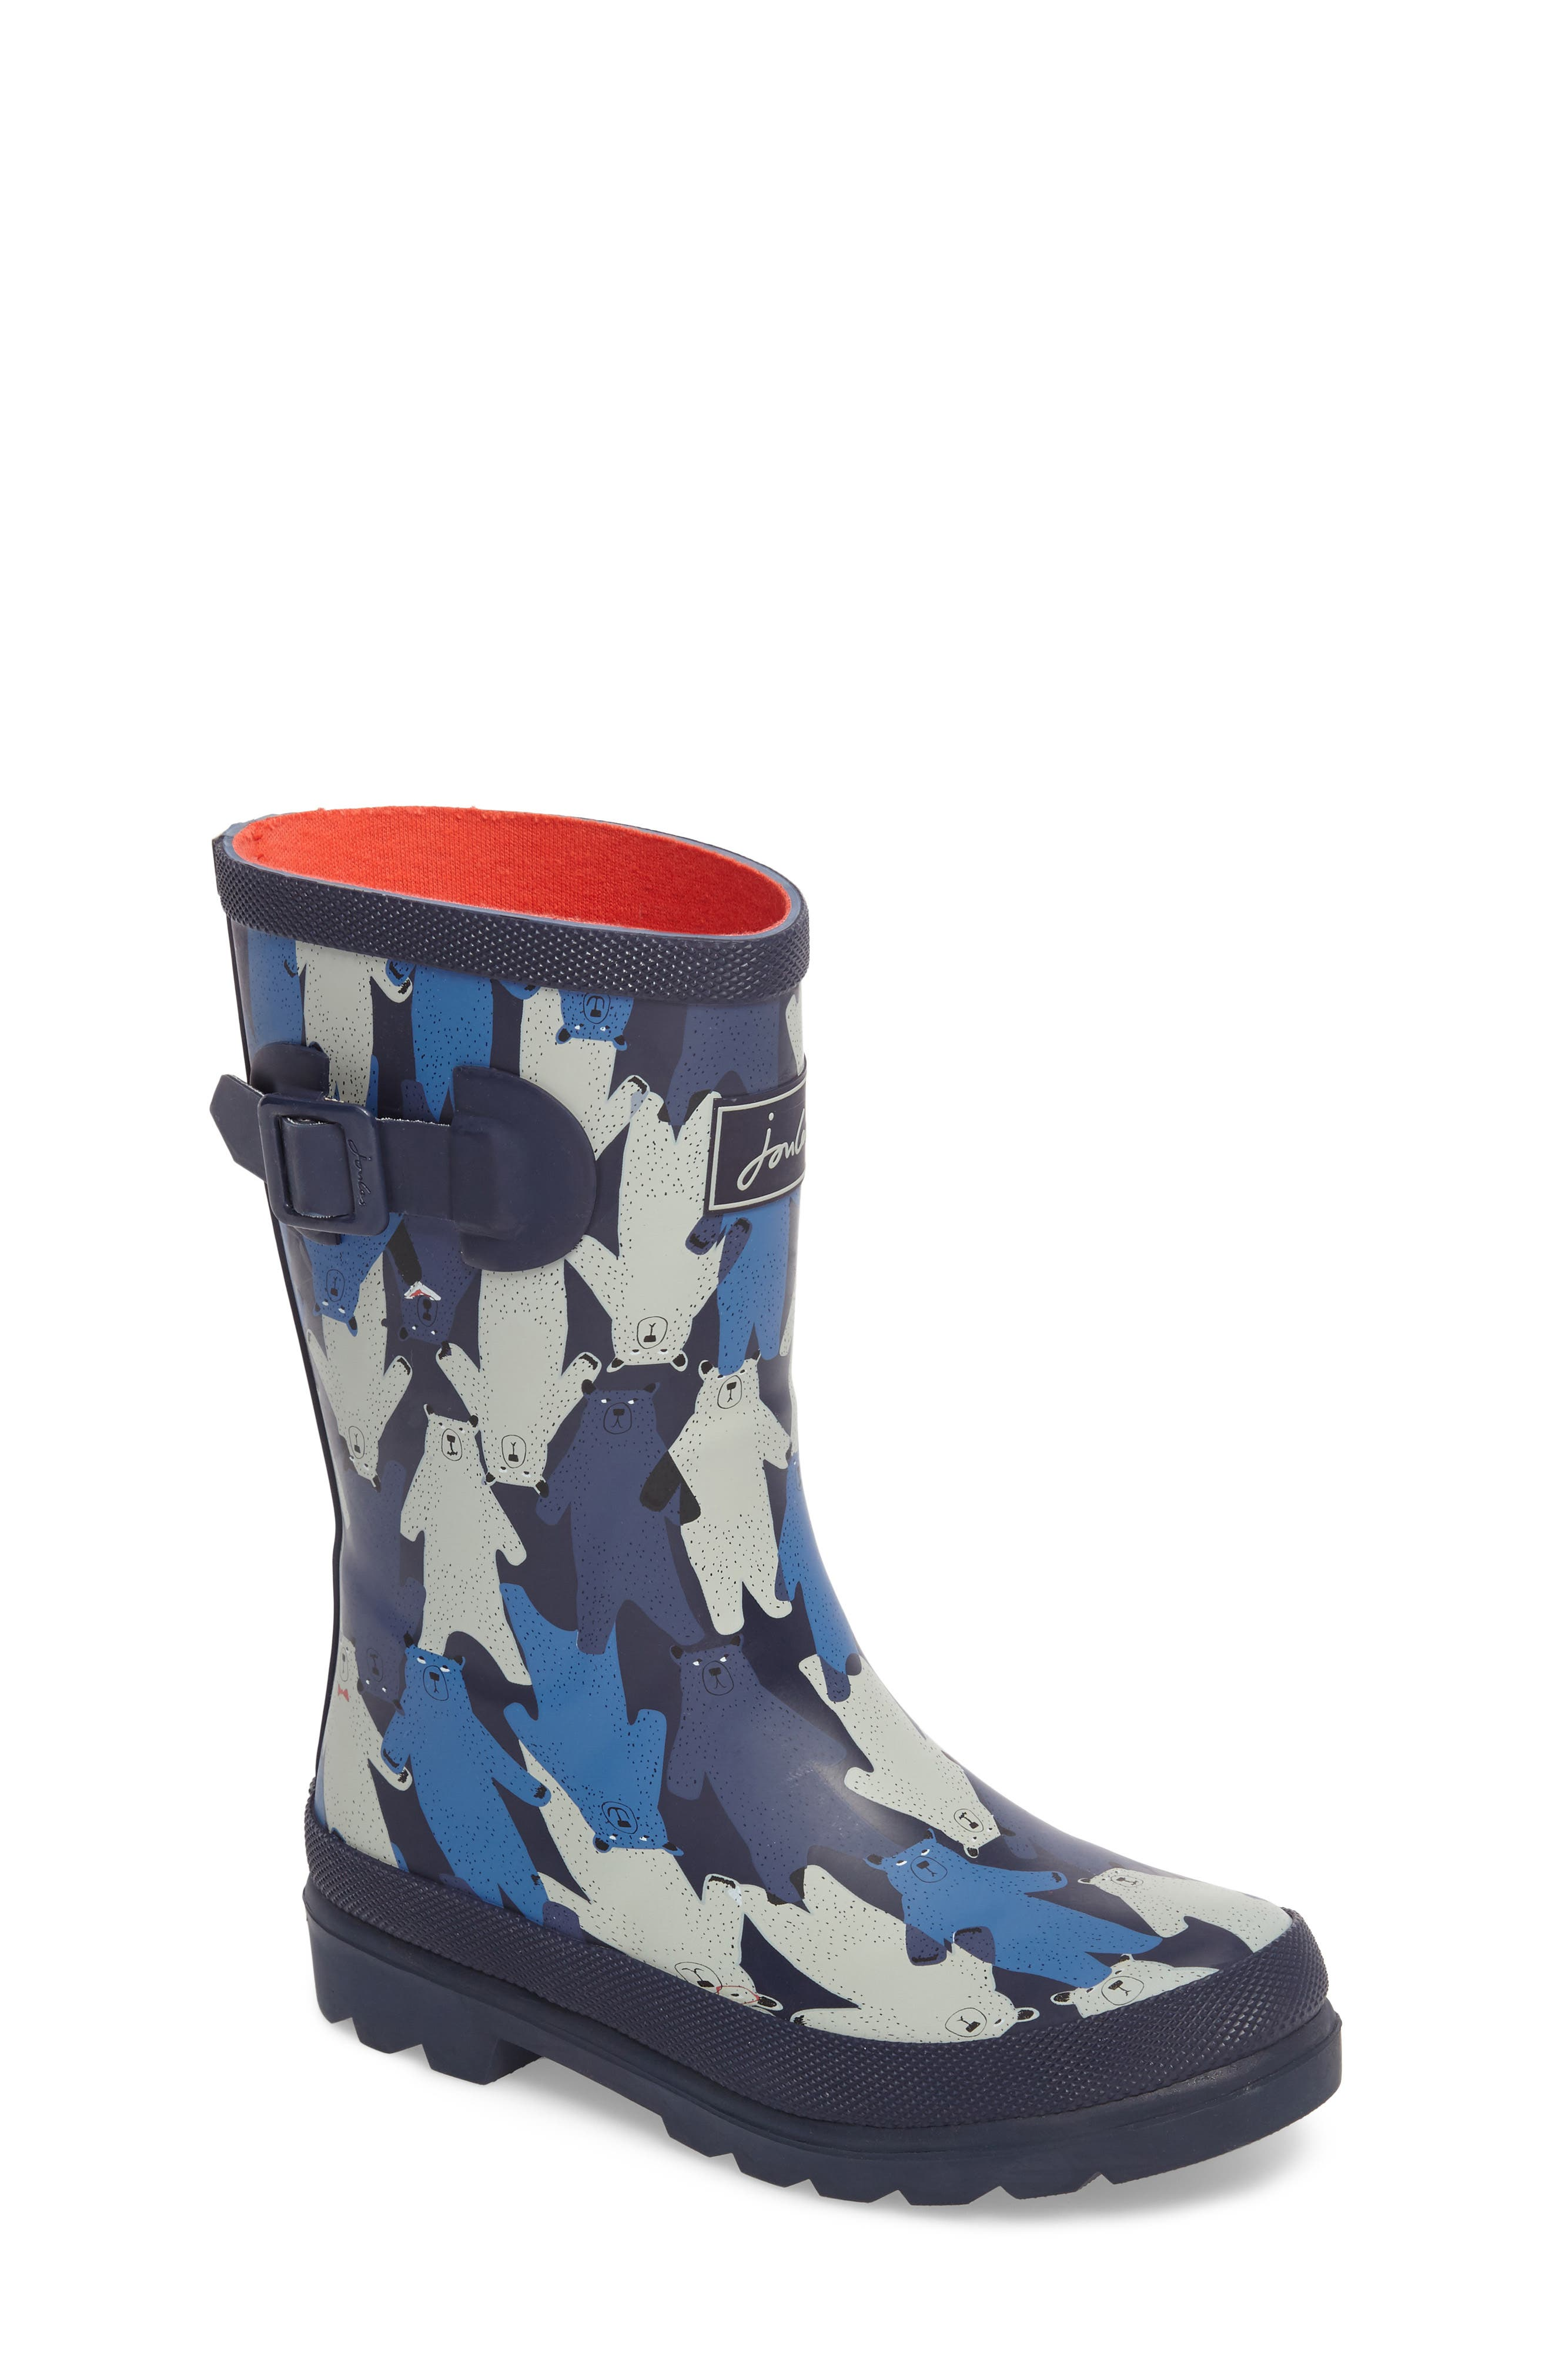 Alternate Image 1 Selected - Joules Printed Waterproof Rain Boot (Toddler, Little Kid & Big Kid)